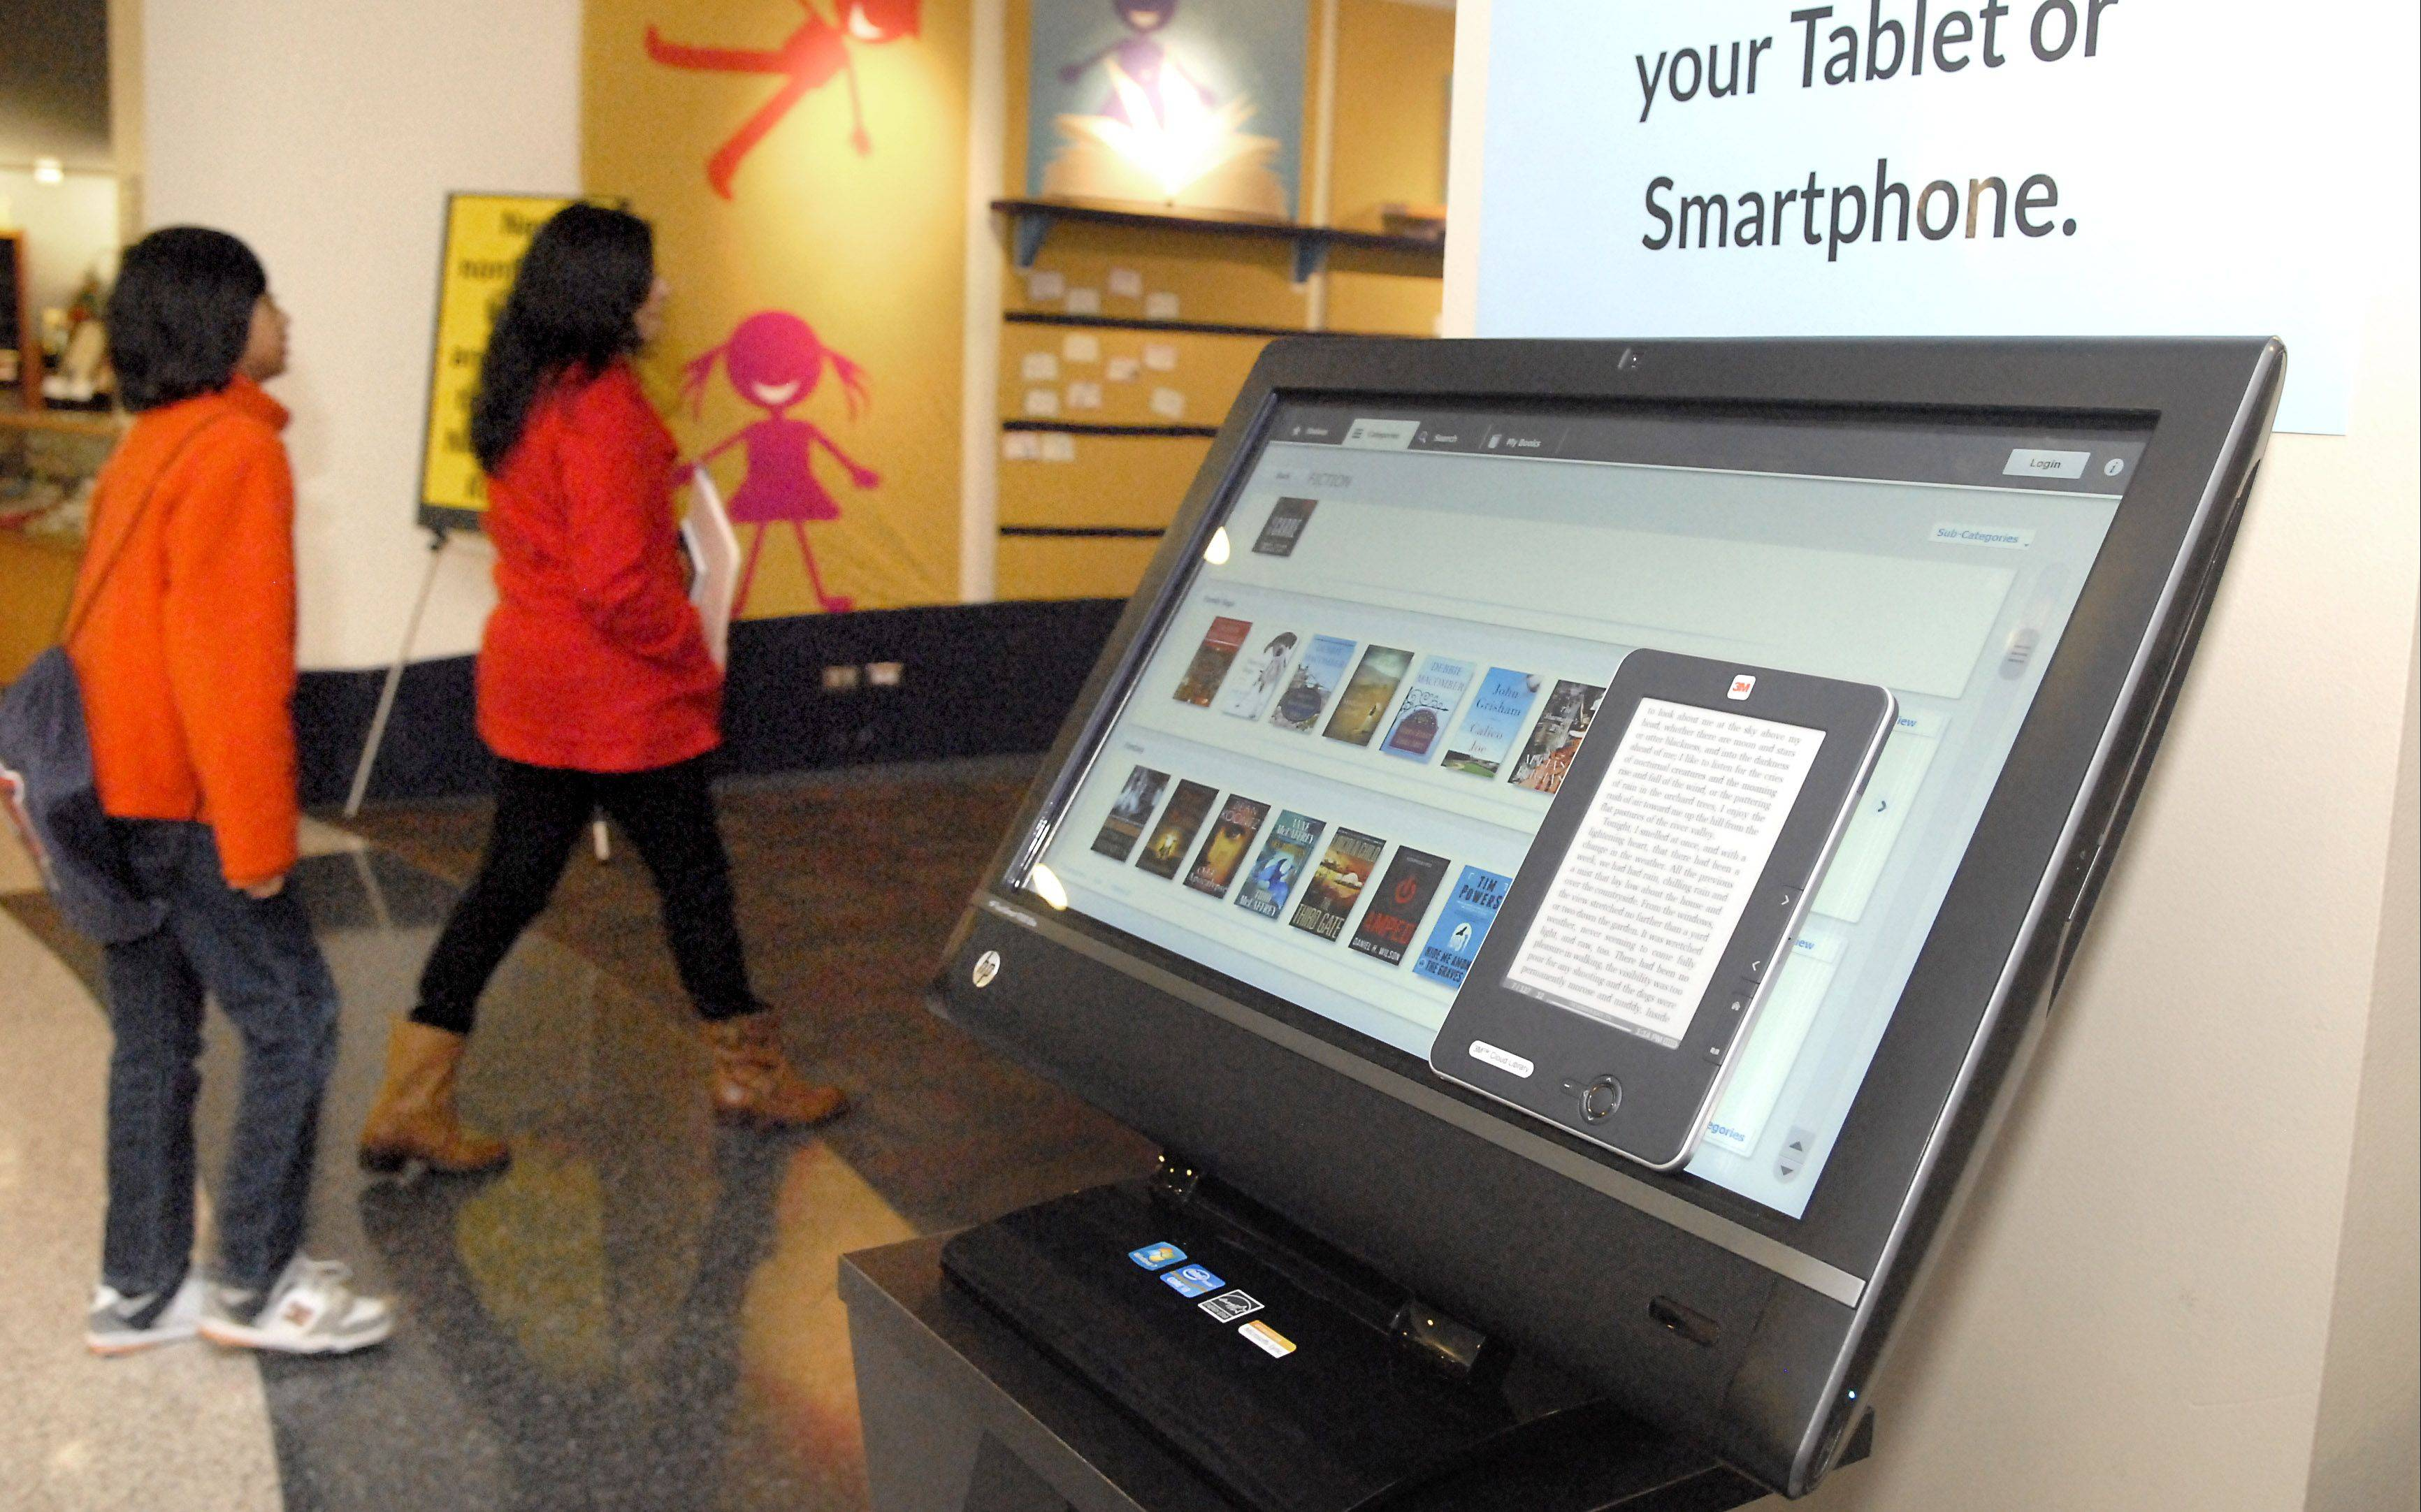 Gail Borden Public Library�s main location in Elgin has a 3M Cloud Library that allows patrons to download e-books wirelessly. Librarians say getting e-books from publishers, however, remains a challenge.